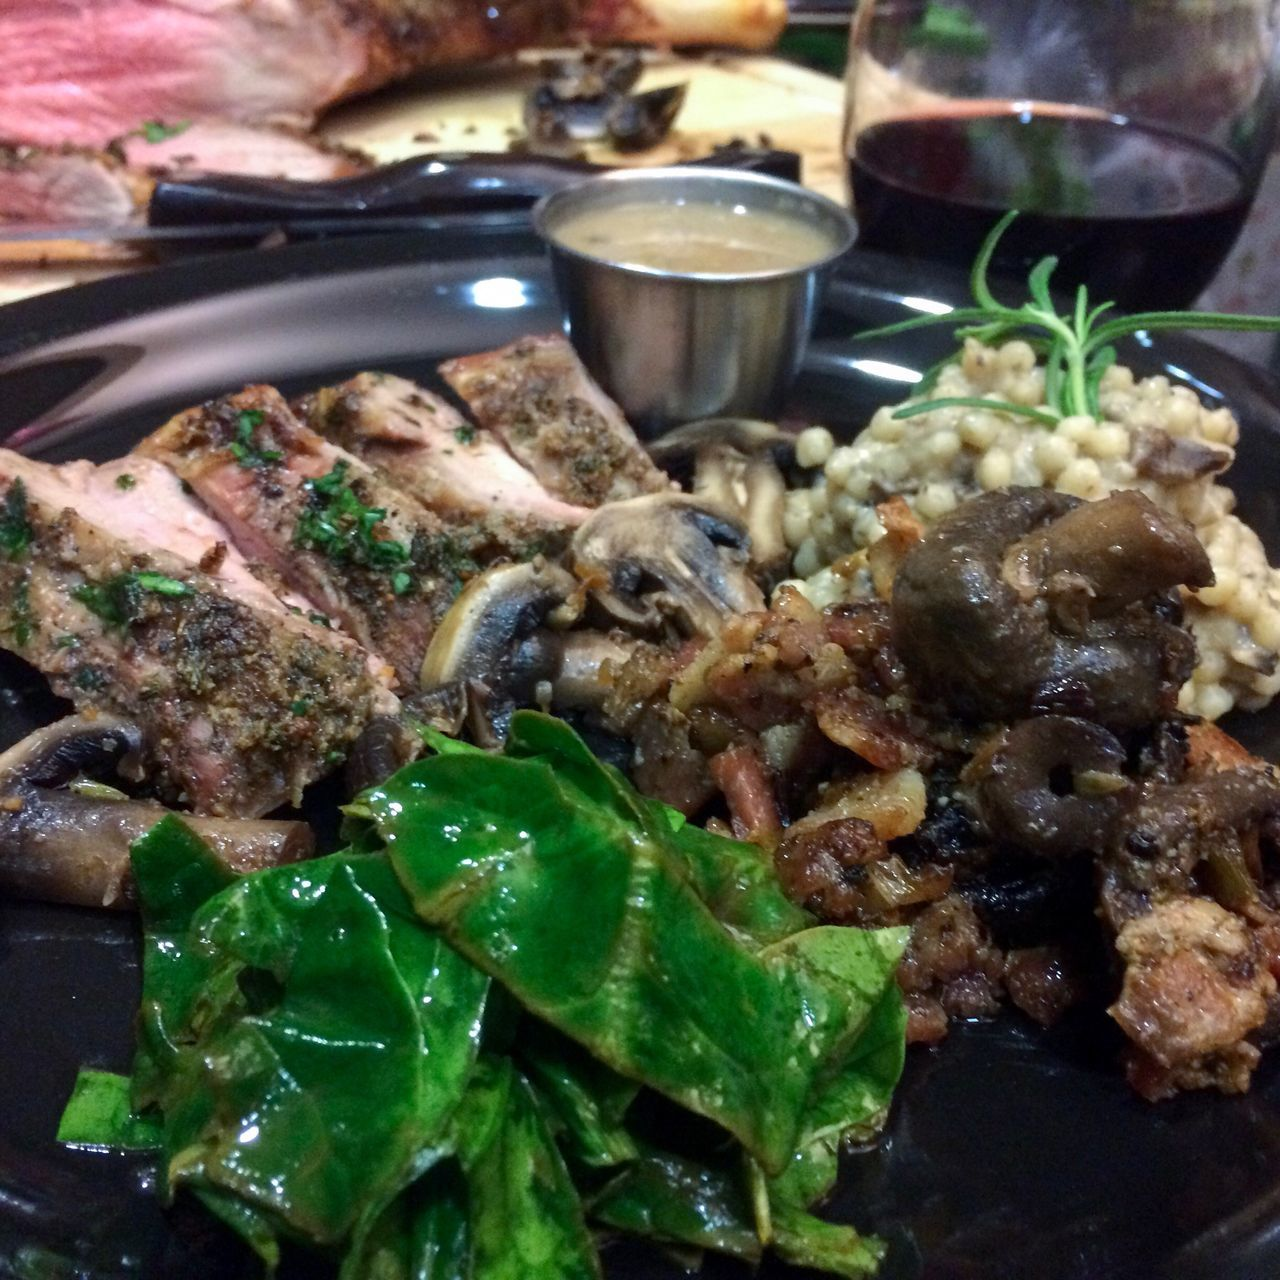 Traveling Home For The Holidays Food And Drink Freshness Food Ready-to-eat Indoors  No People Close-up Healthy Eating Roastedlamb Cabernetsauvignon Couscous Spinach Mushrooms Christmasdinner Holidays 12daysofeyeem Farmtotable Cuisine Foodphotography Family Dinner Traditions